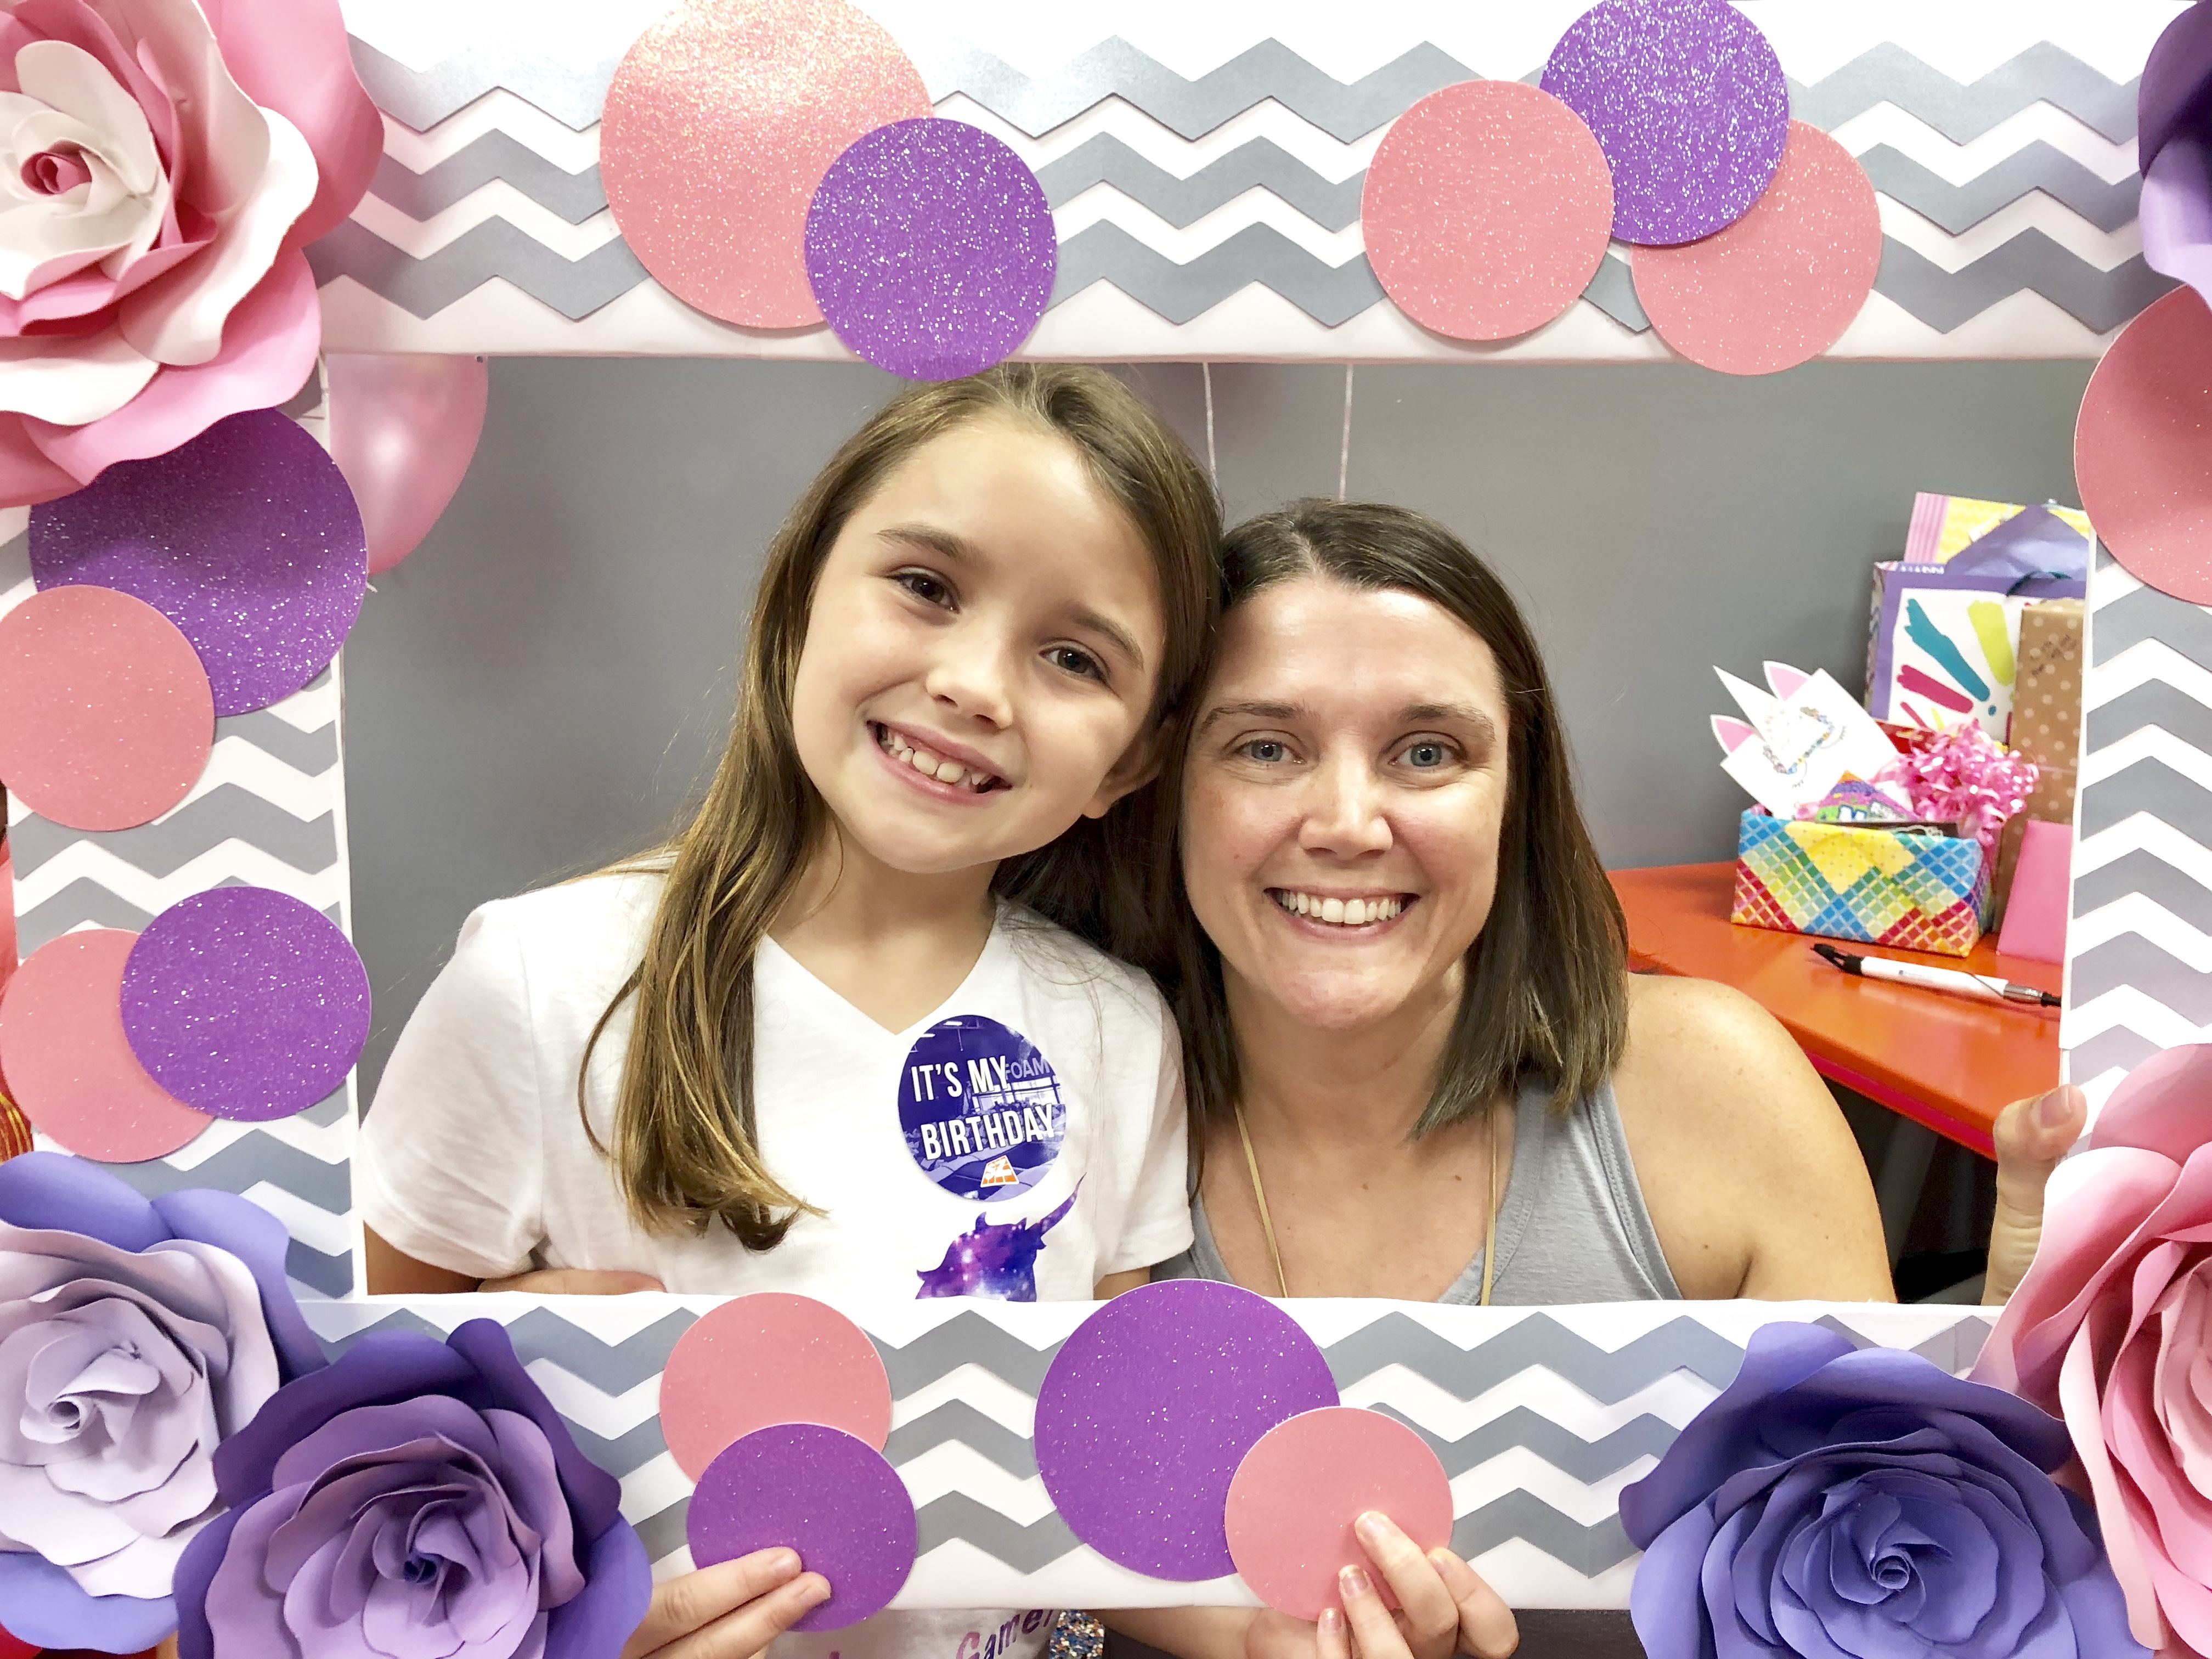 Posing with DIY photo frame - Pretty Pusheen & Cupcake Party Ideas